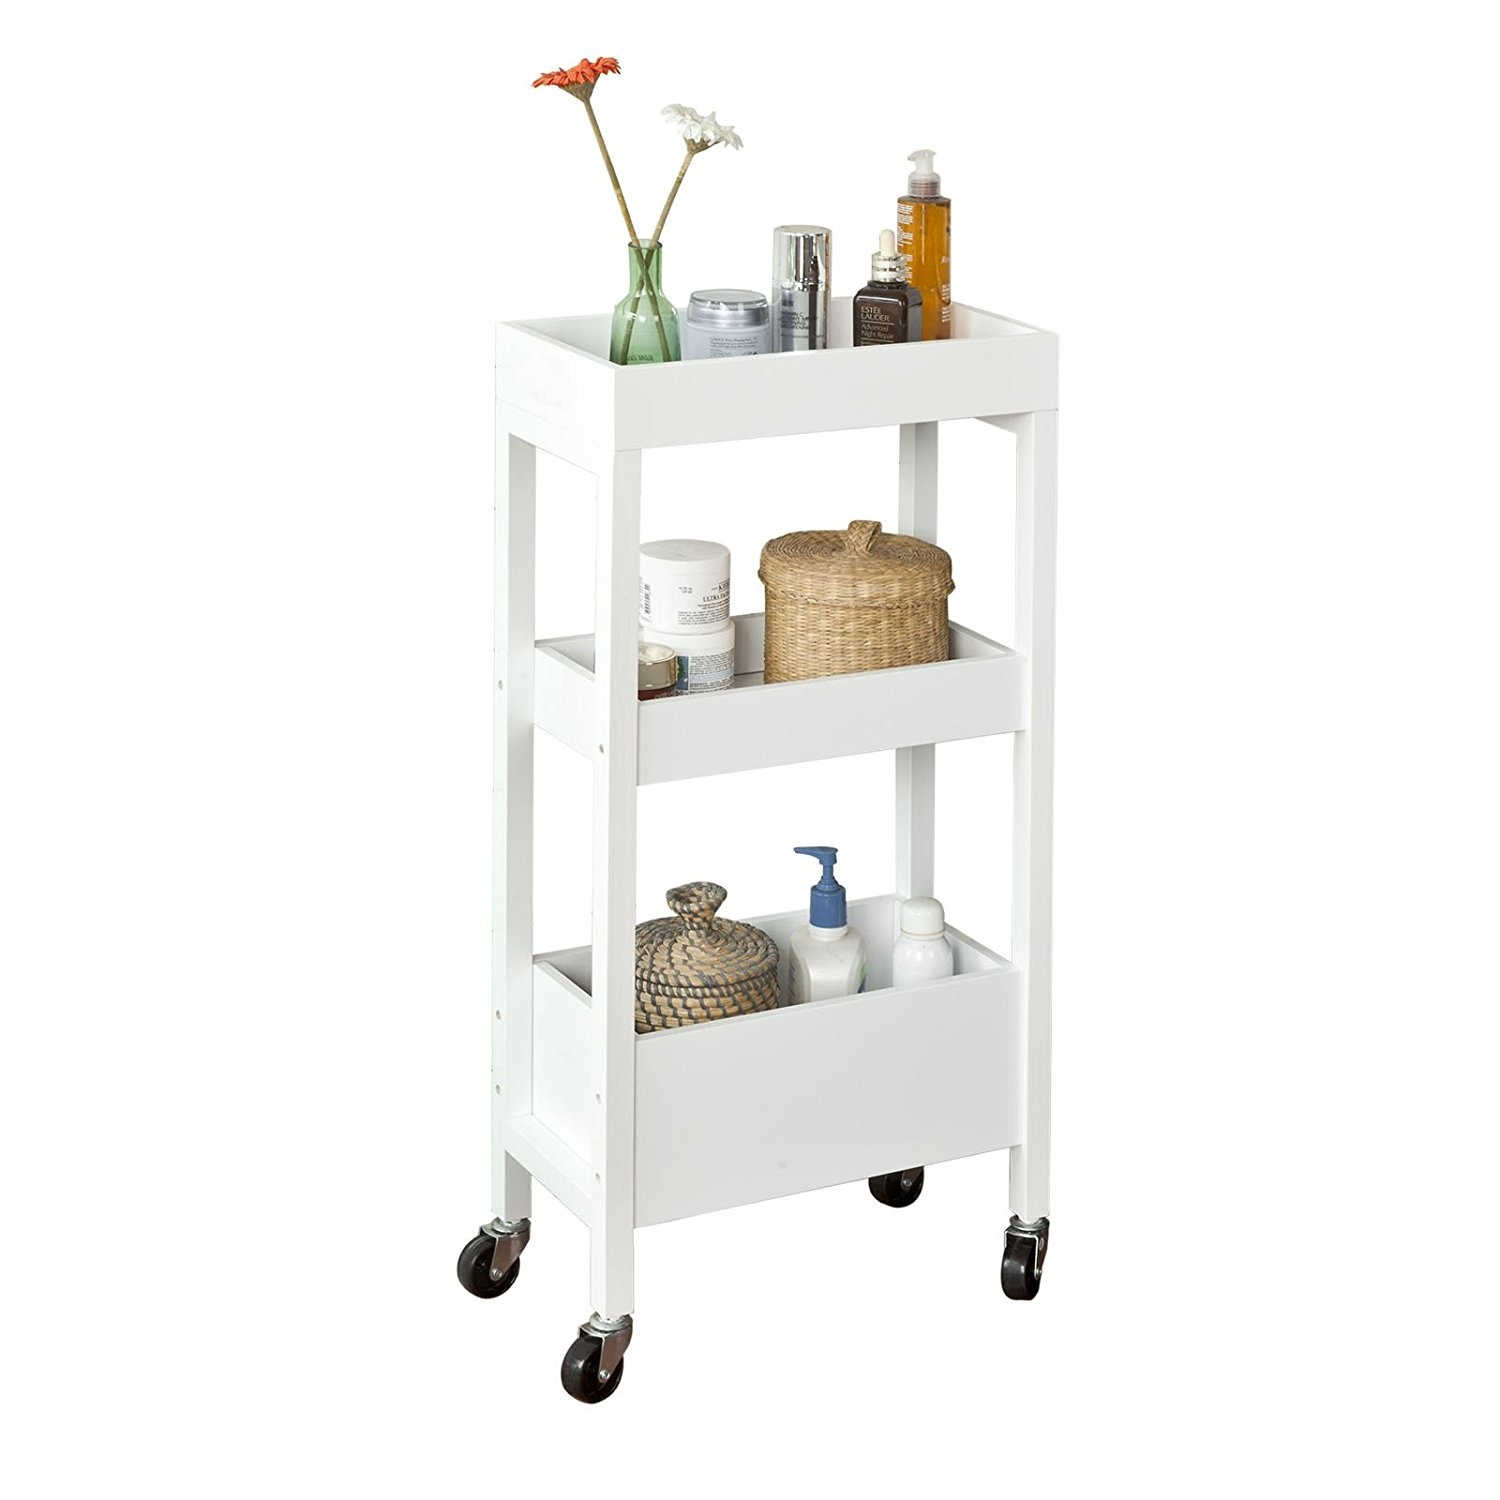 Sobuy Shop Sobuy Kitchen Trolley Servir Trolley 3 Shelves 4 Ruedas Blanco